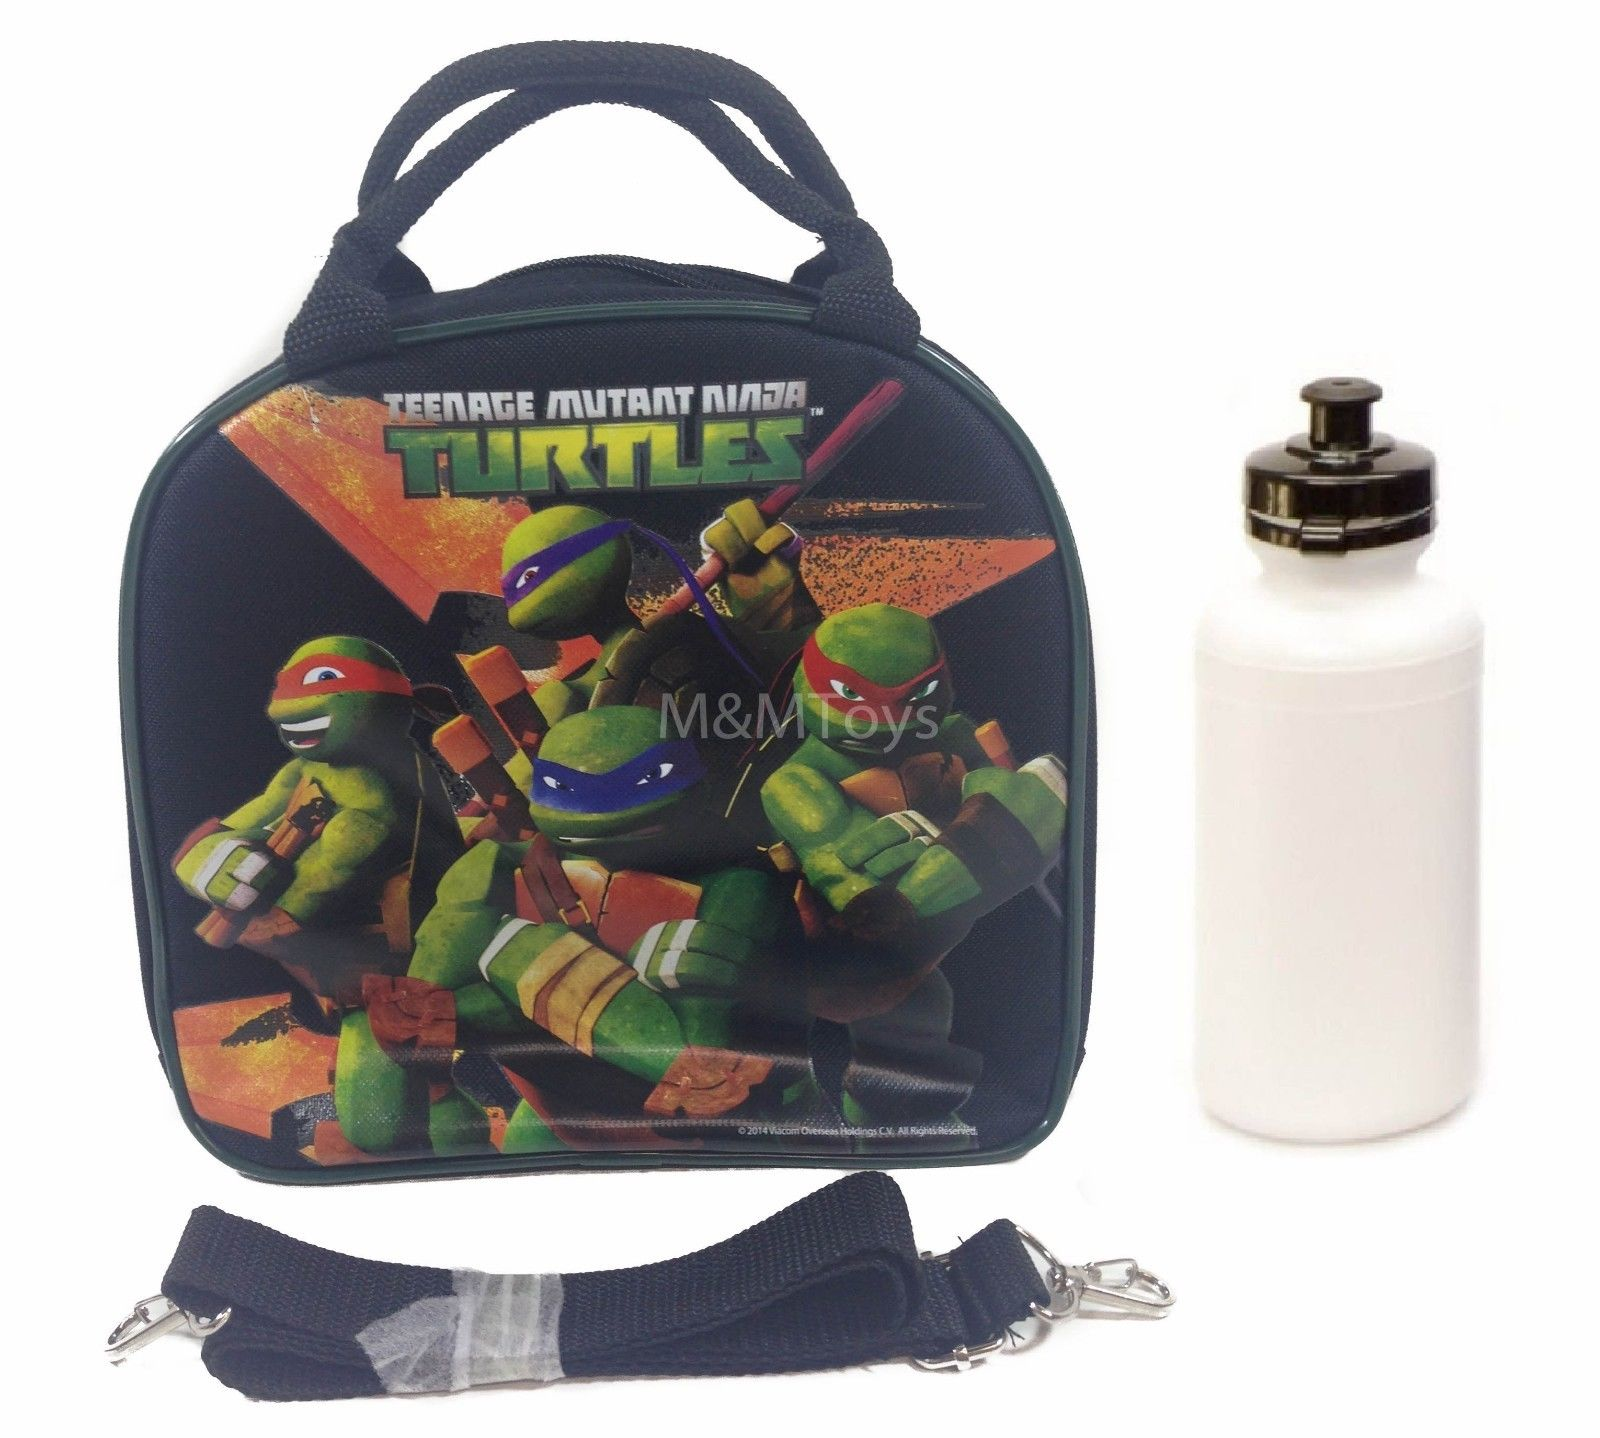 Ninja Turtle Lunch Box Bag with Shoulder Strap and Water Bottle by